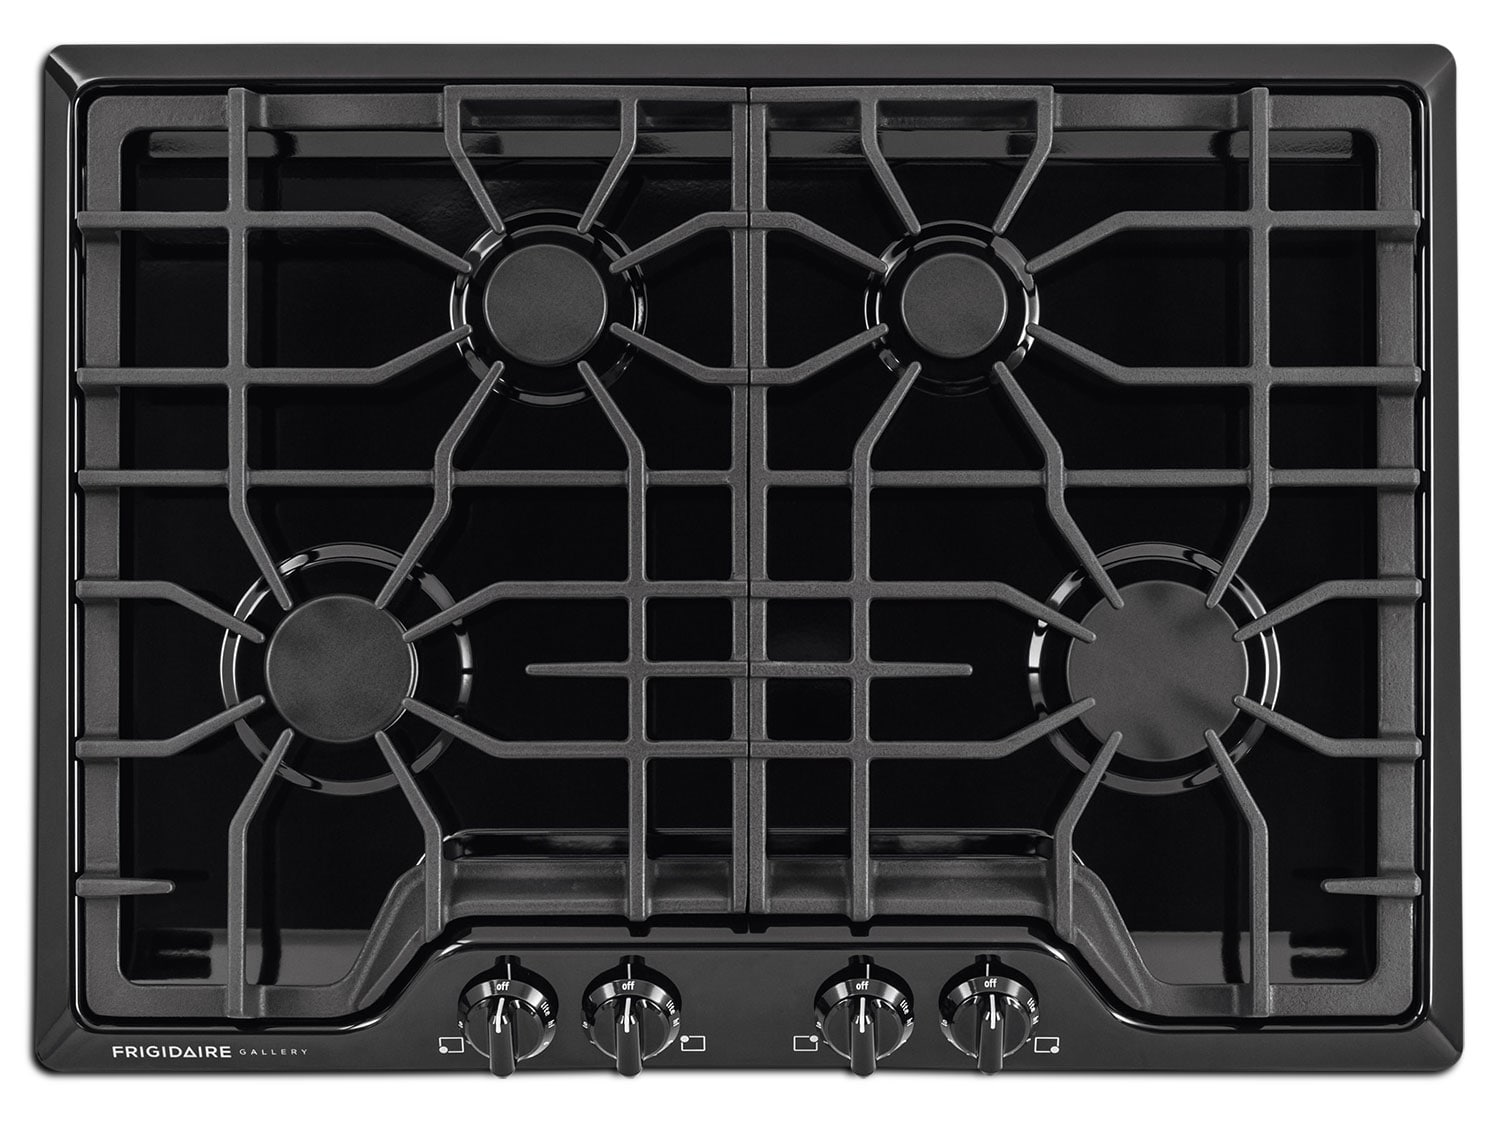 Cooking Products - Frigidaire Gallery Gas Cooktop FGGC3045QB